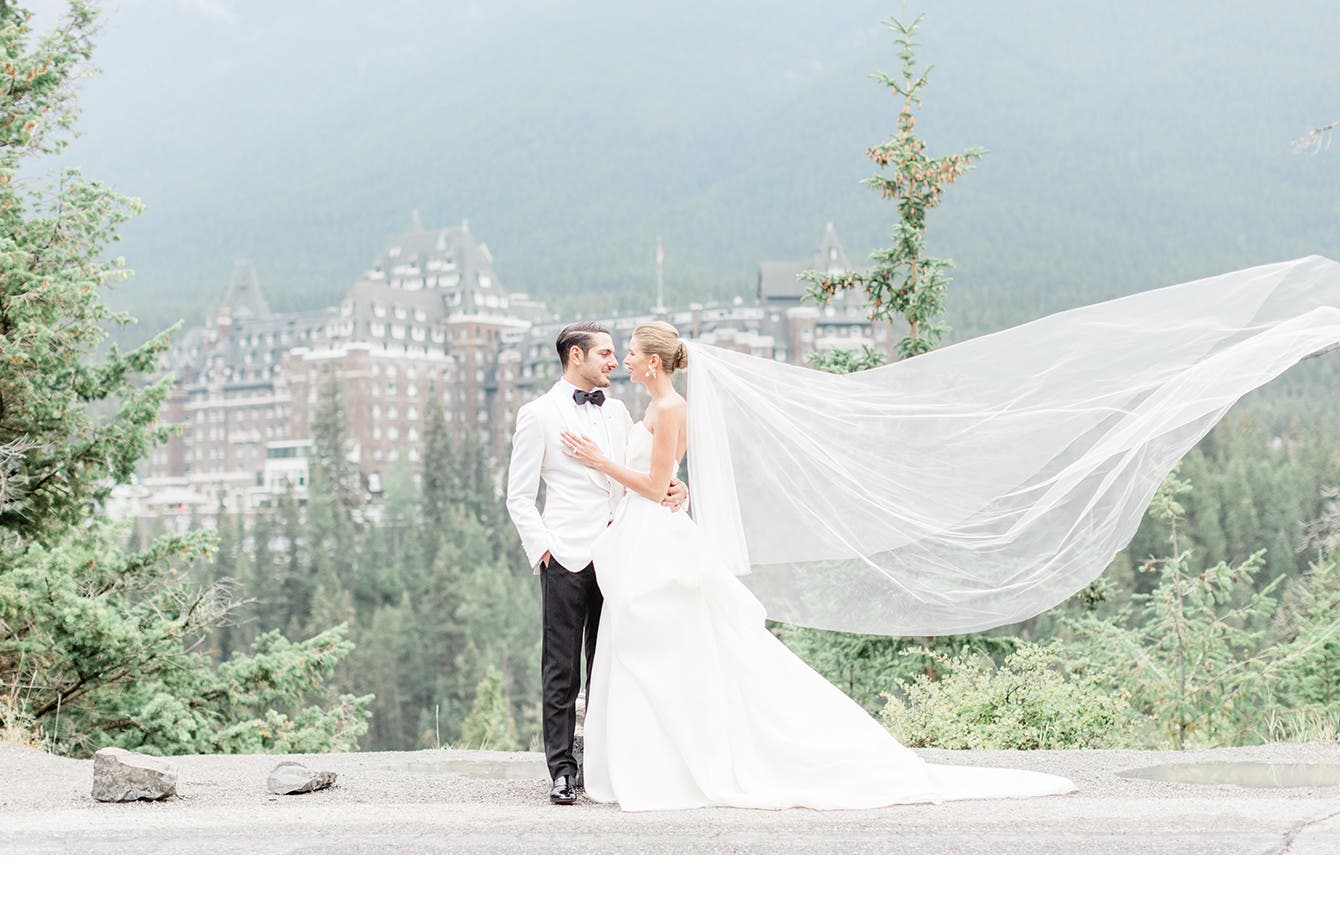 Newlyweds Holly and Abraham pose before a castle in the Canadian wilderness.